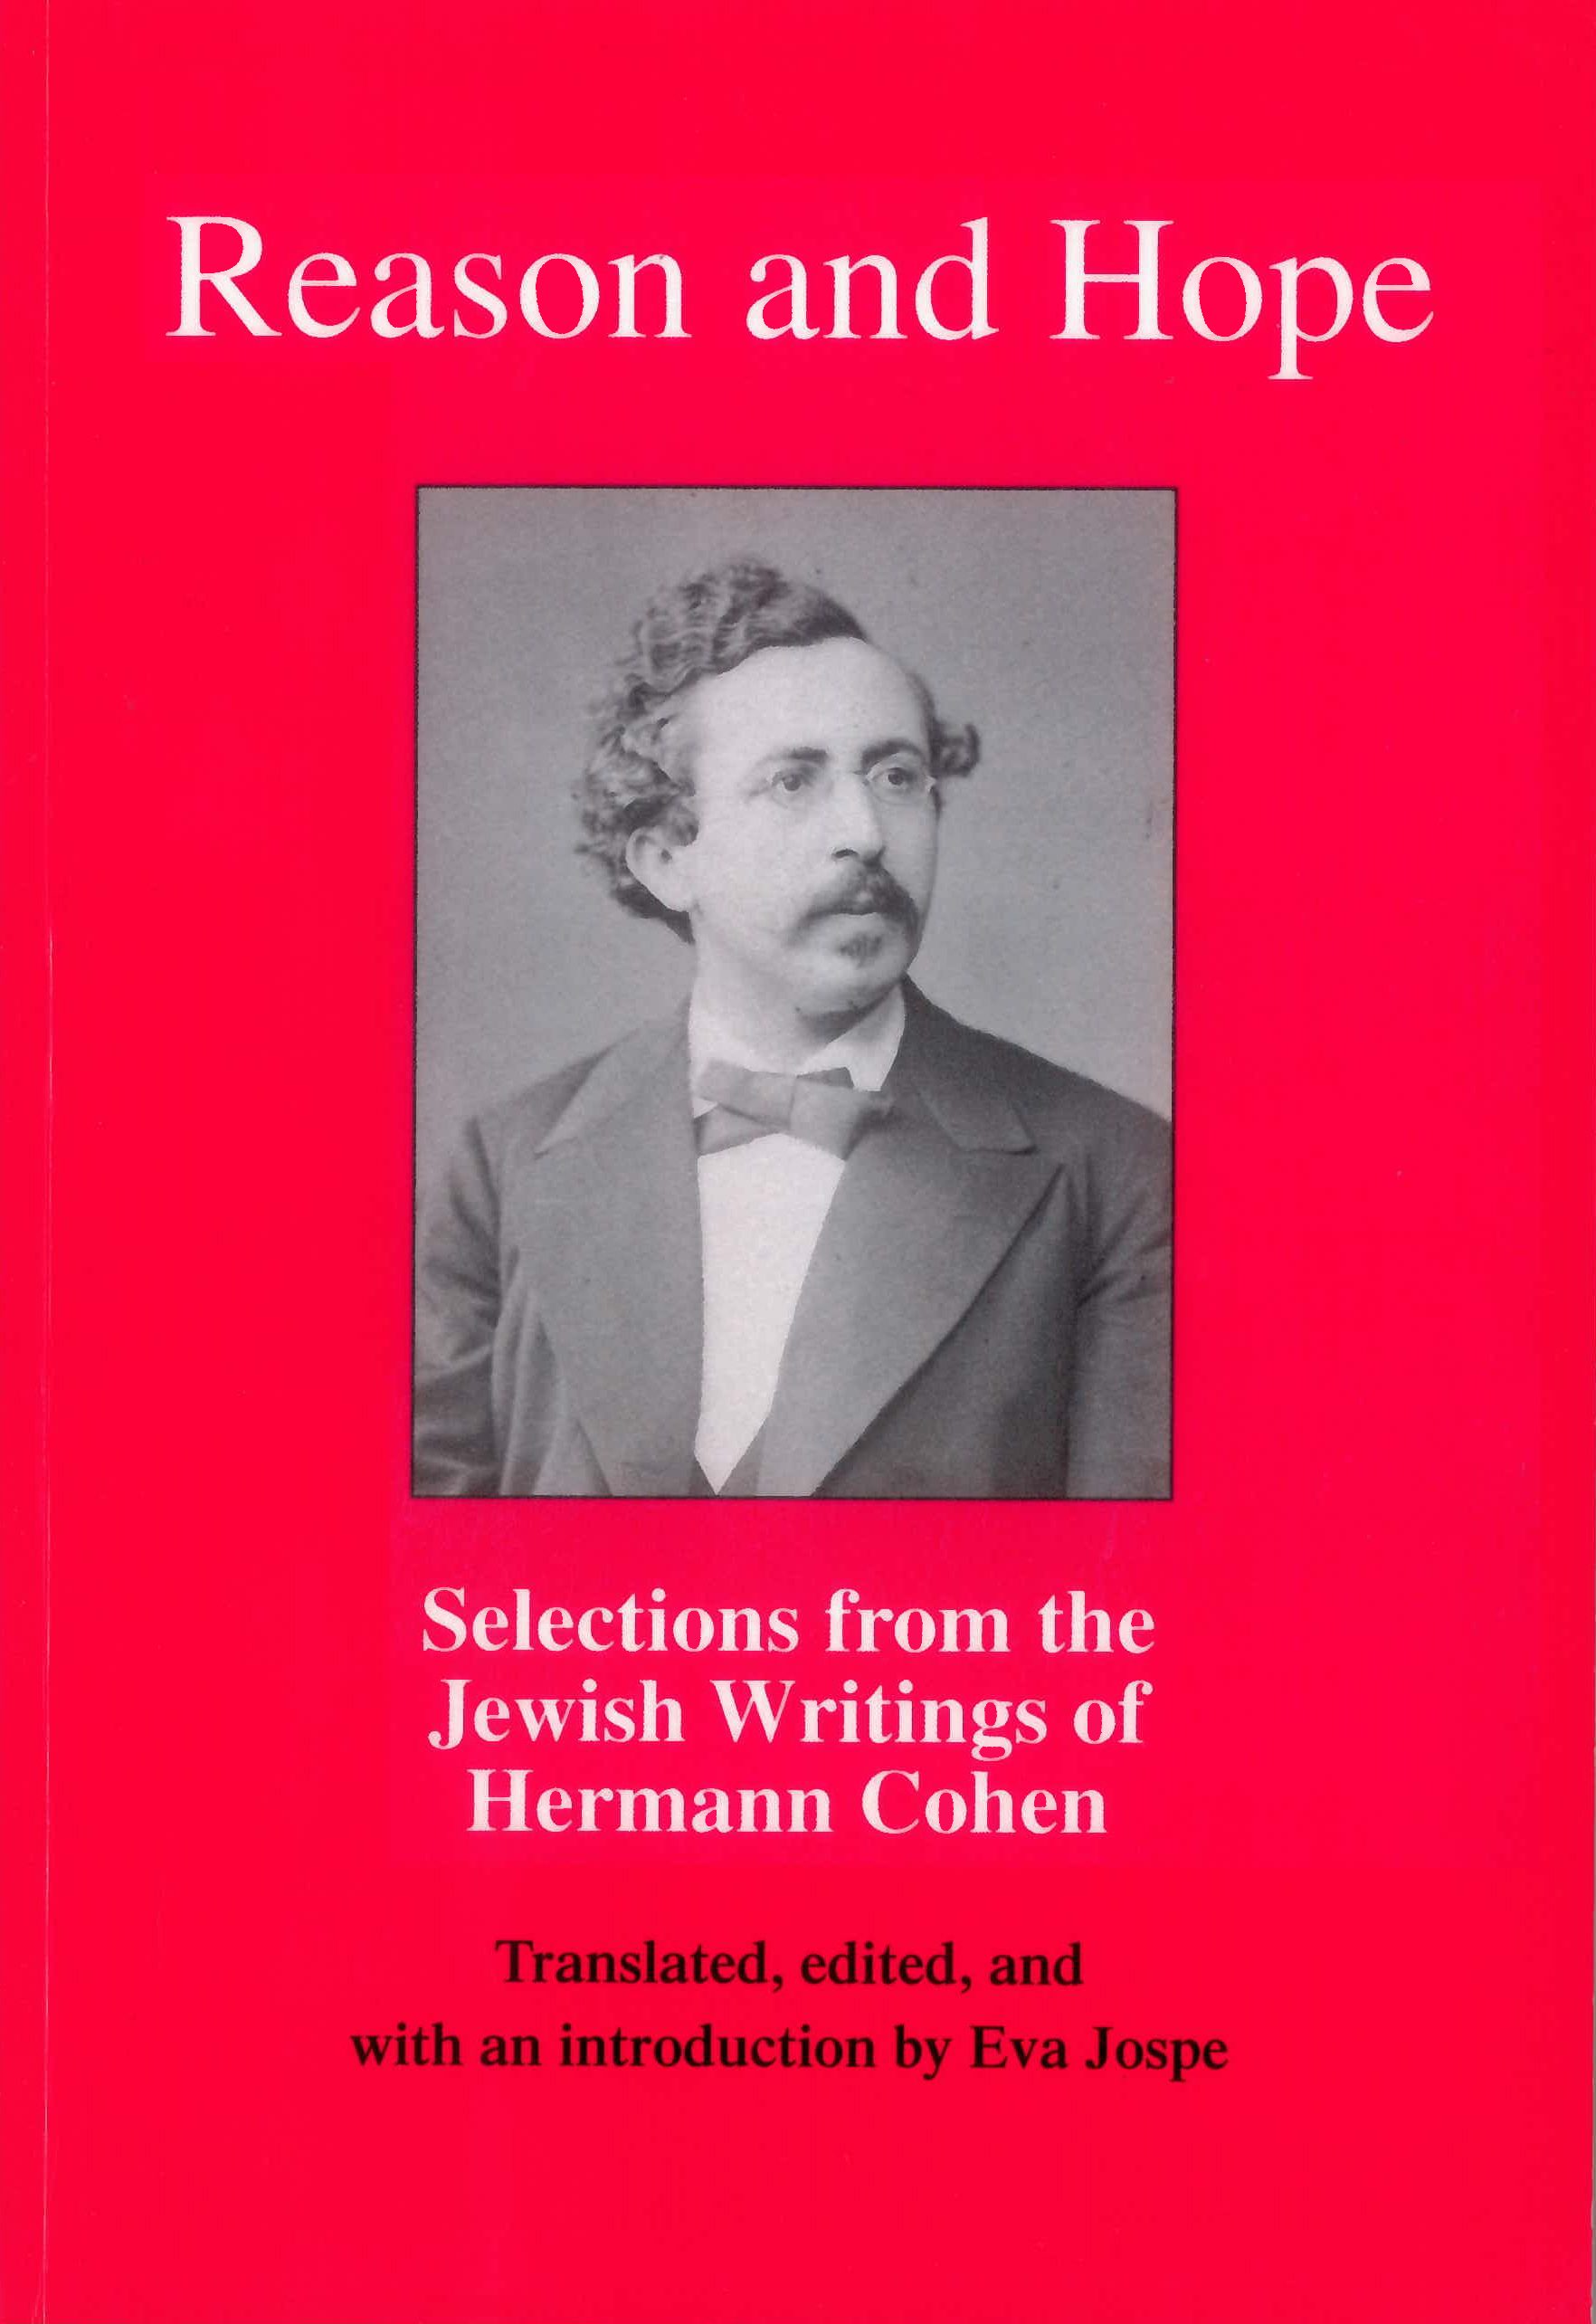 Image result for photos of Hemann Cohen and Franz Rosenzweig,